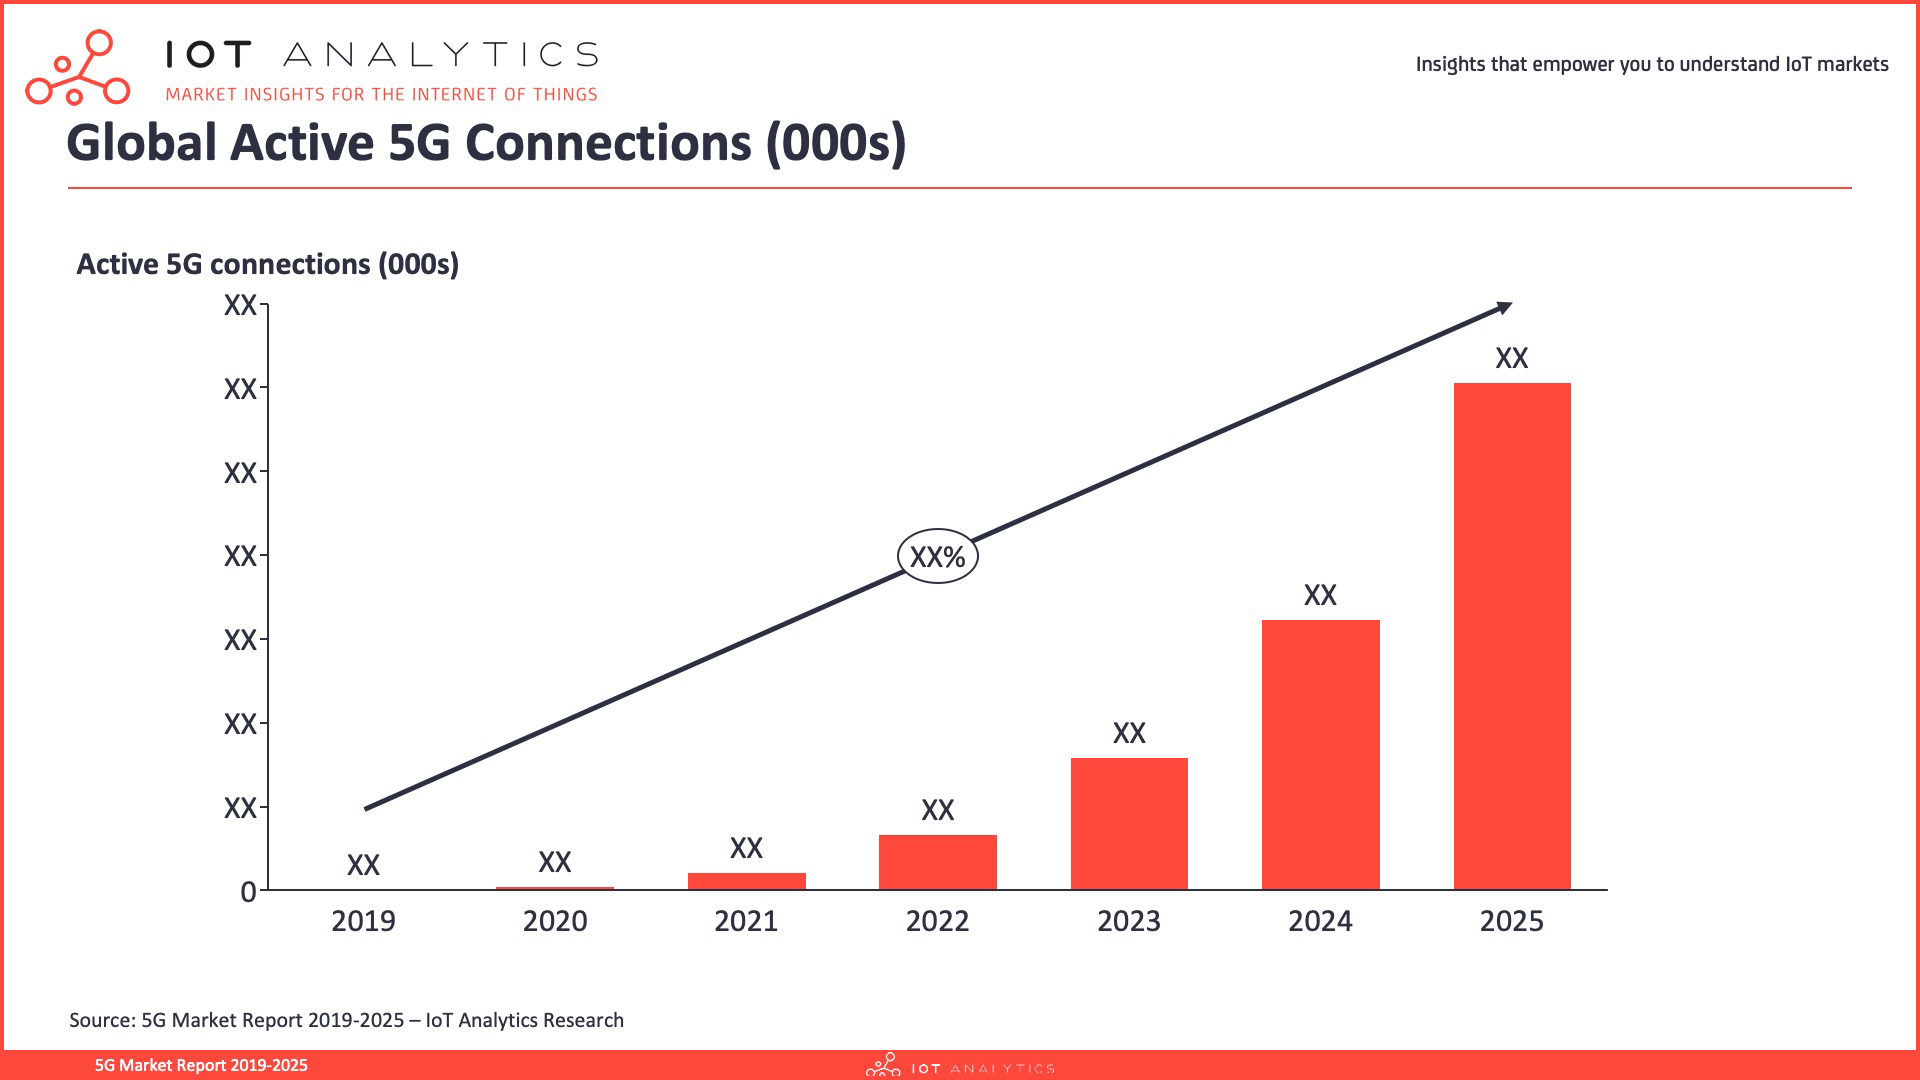 5G Market Report 2019-2025 - Global Active 5G Connections